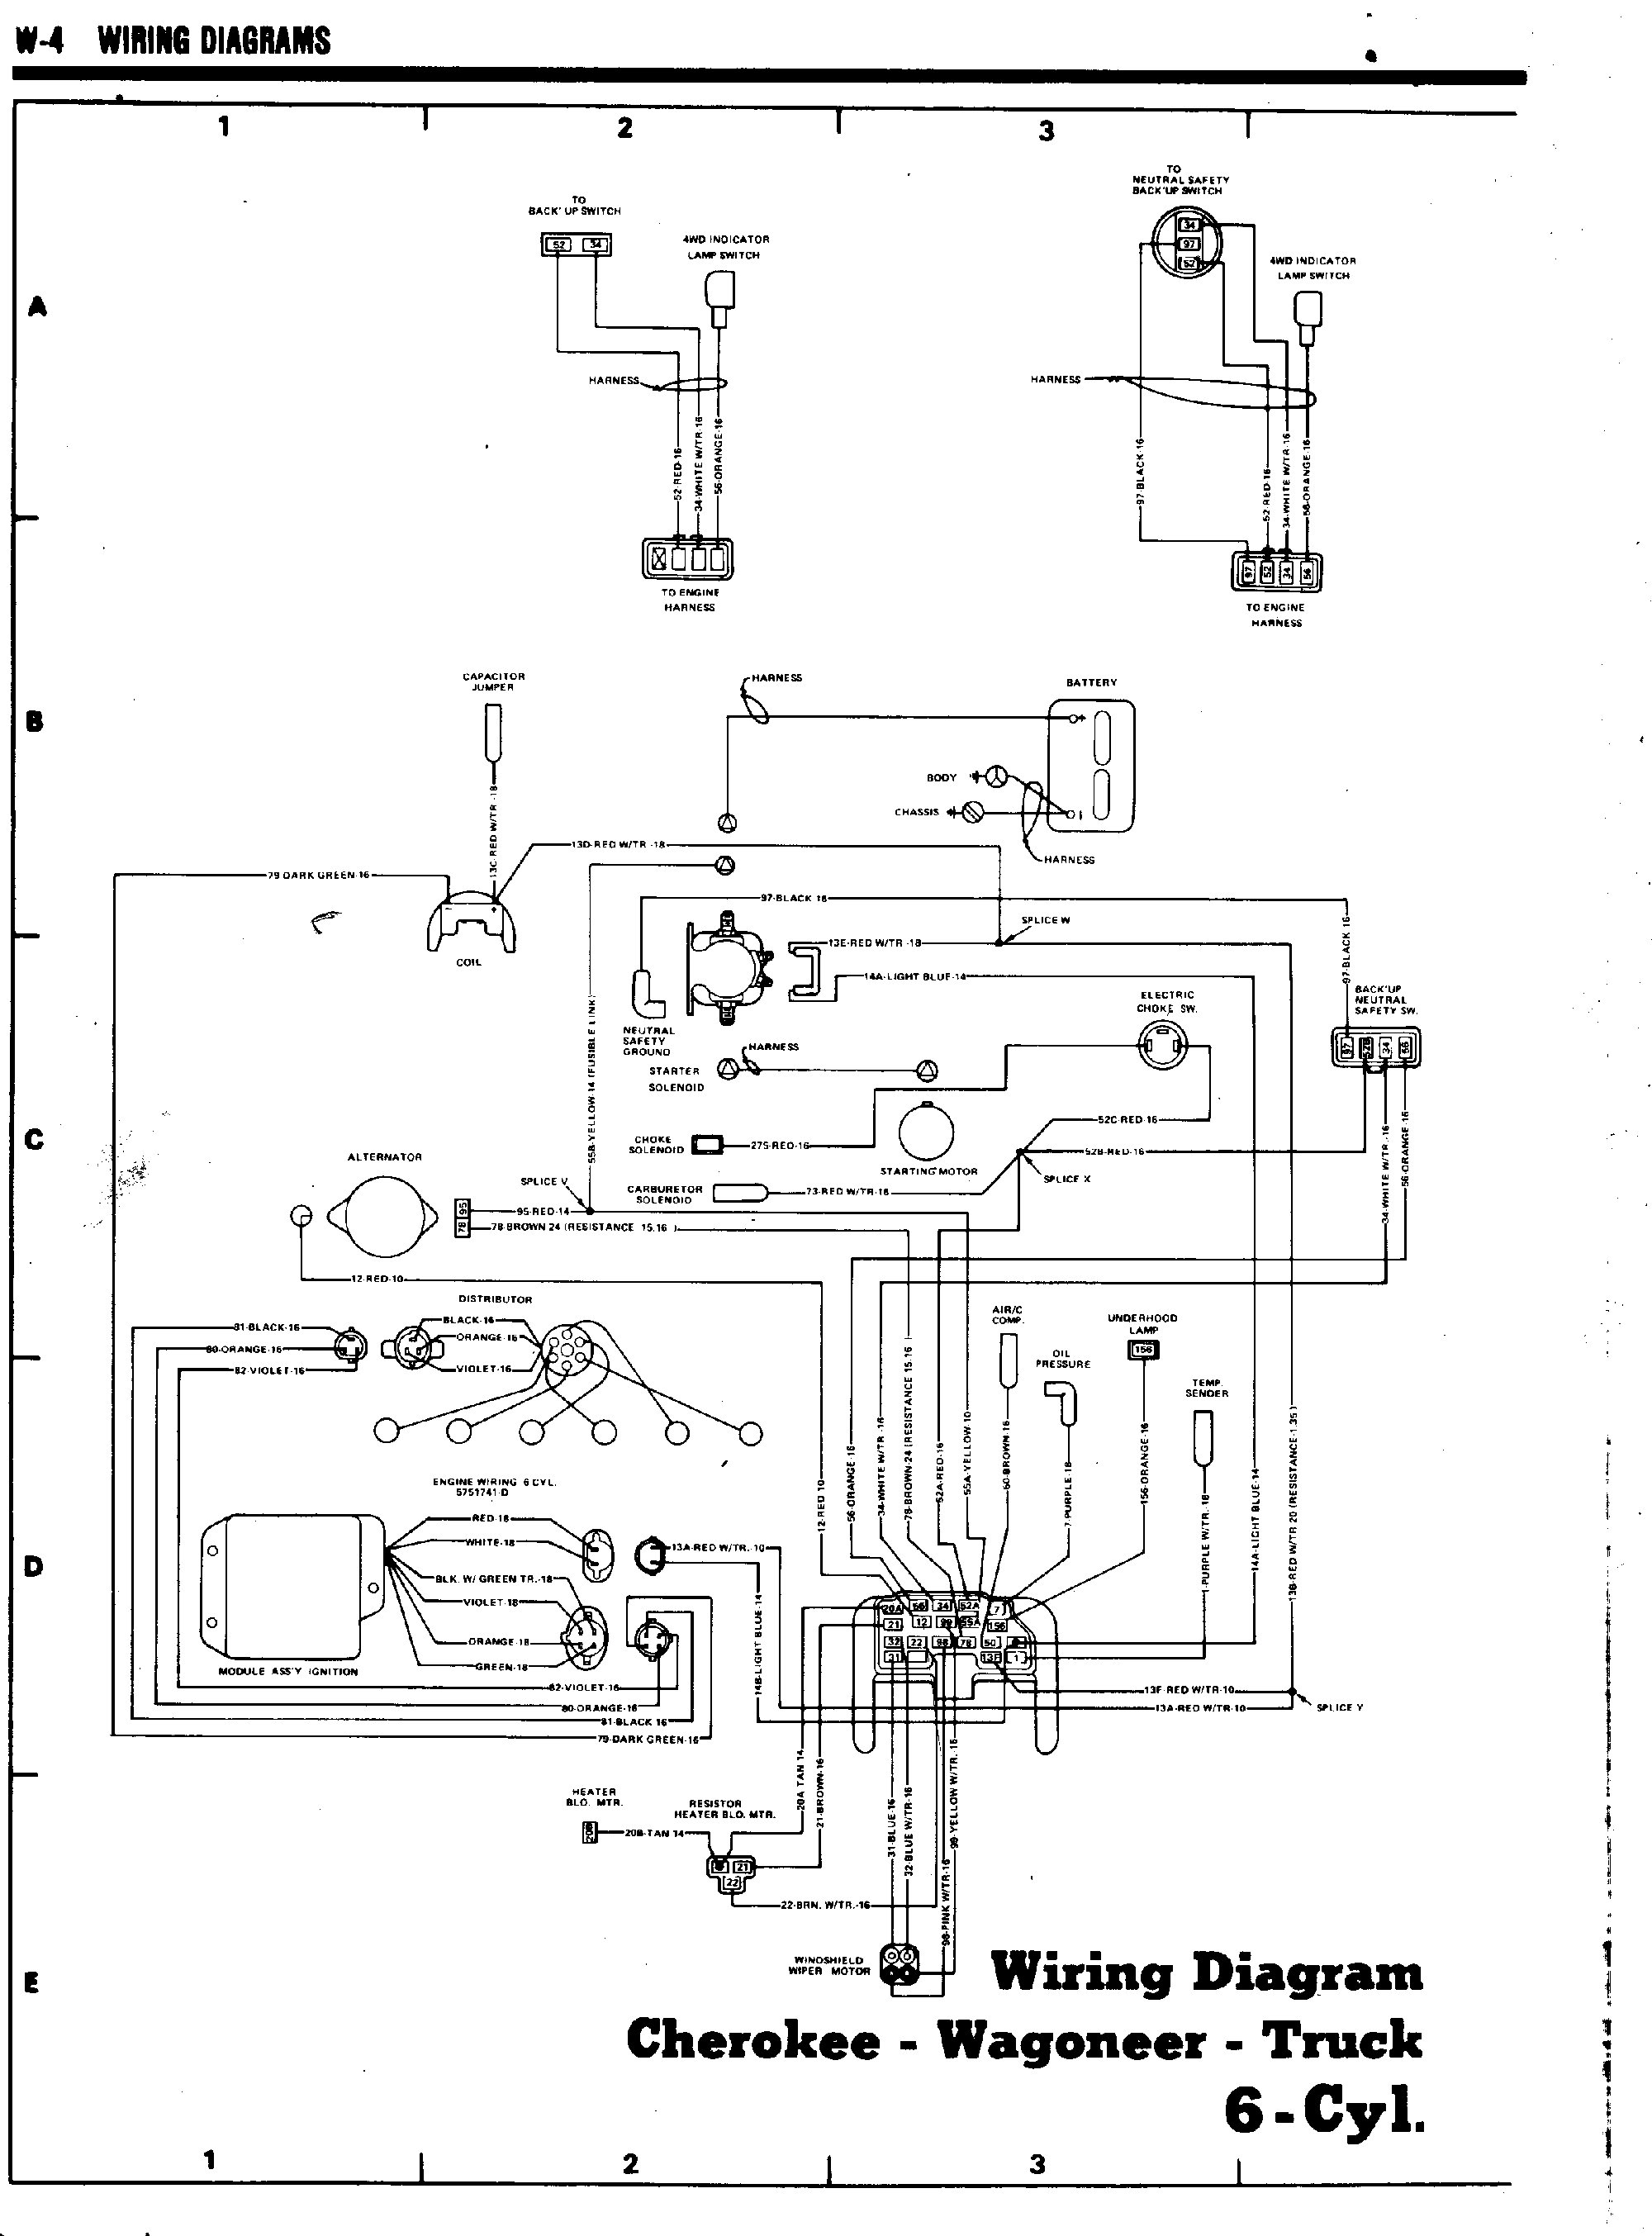 1980_cherokee_wagoneer_truck_6cyl_pg1 jeep wagoneer wiring diagram jeep wiring diagrams instruction International Truck 4300 Wiring-Diagram at bakdesigns.co